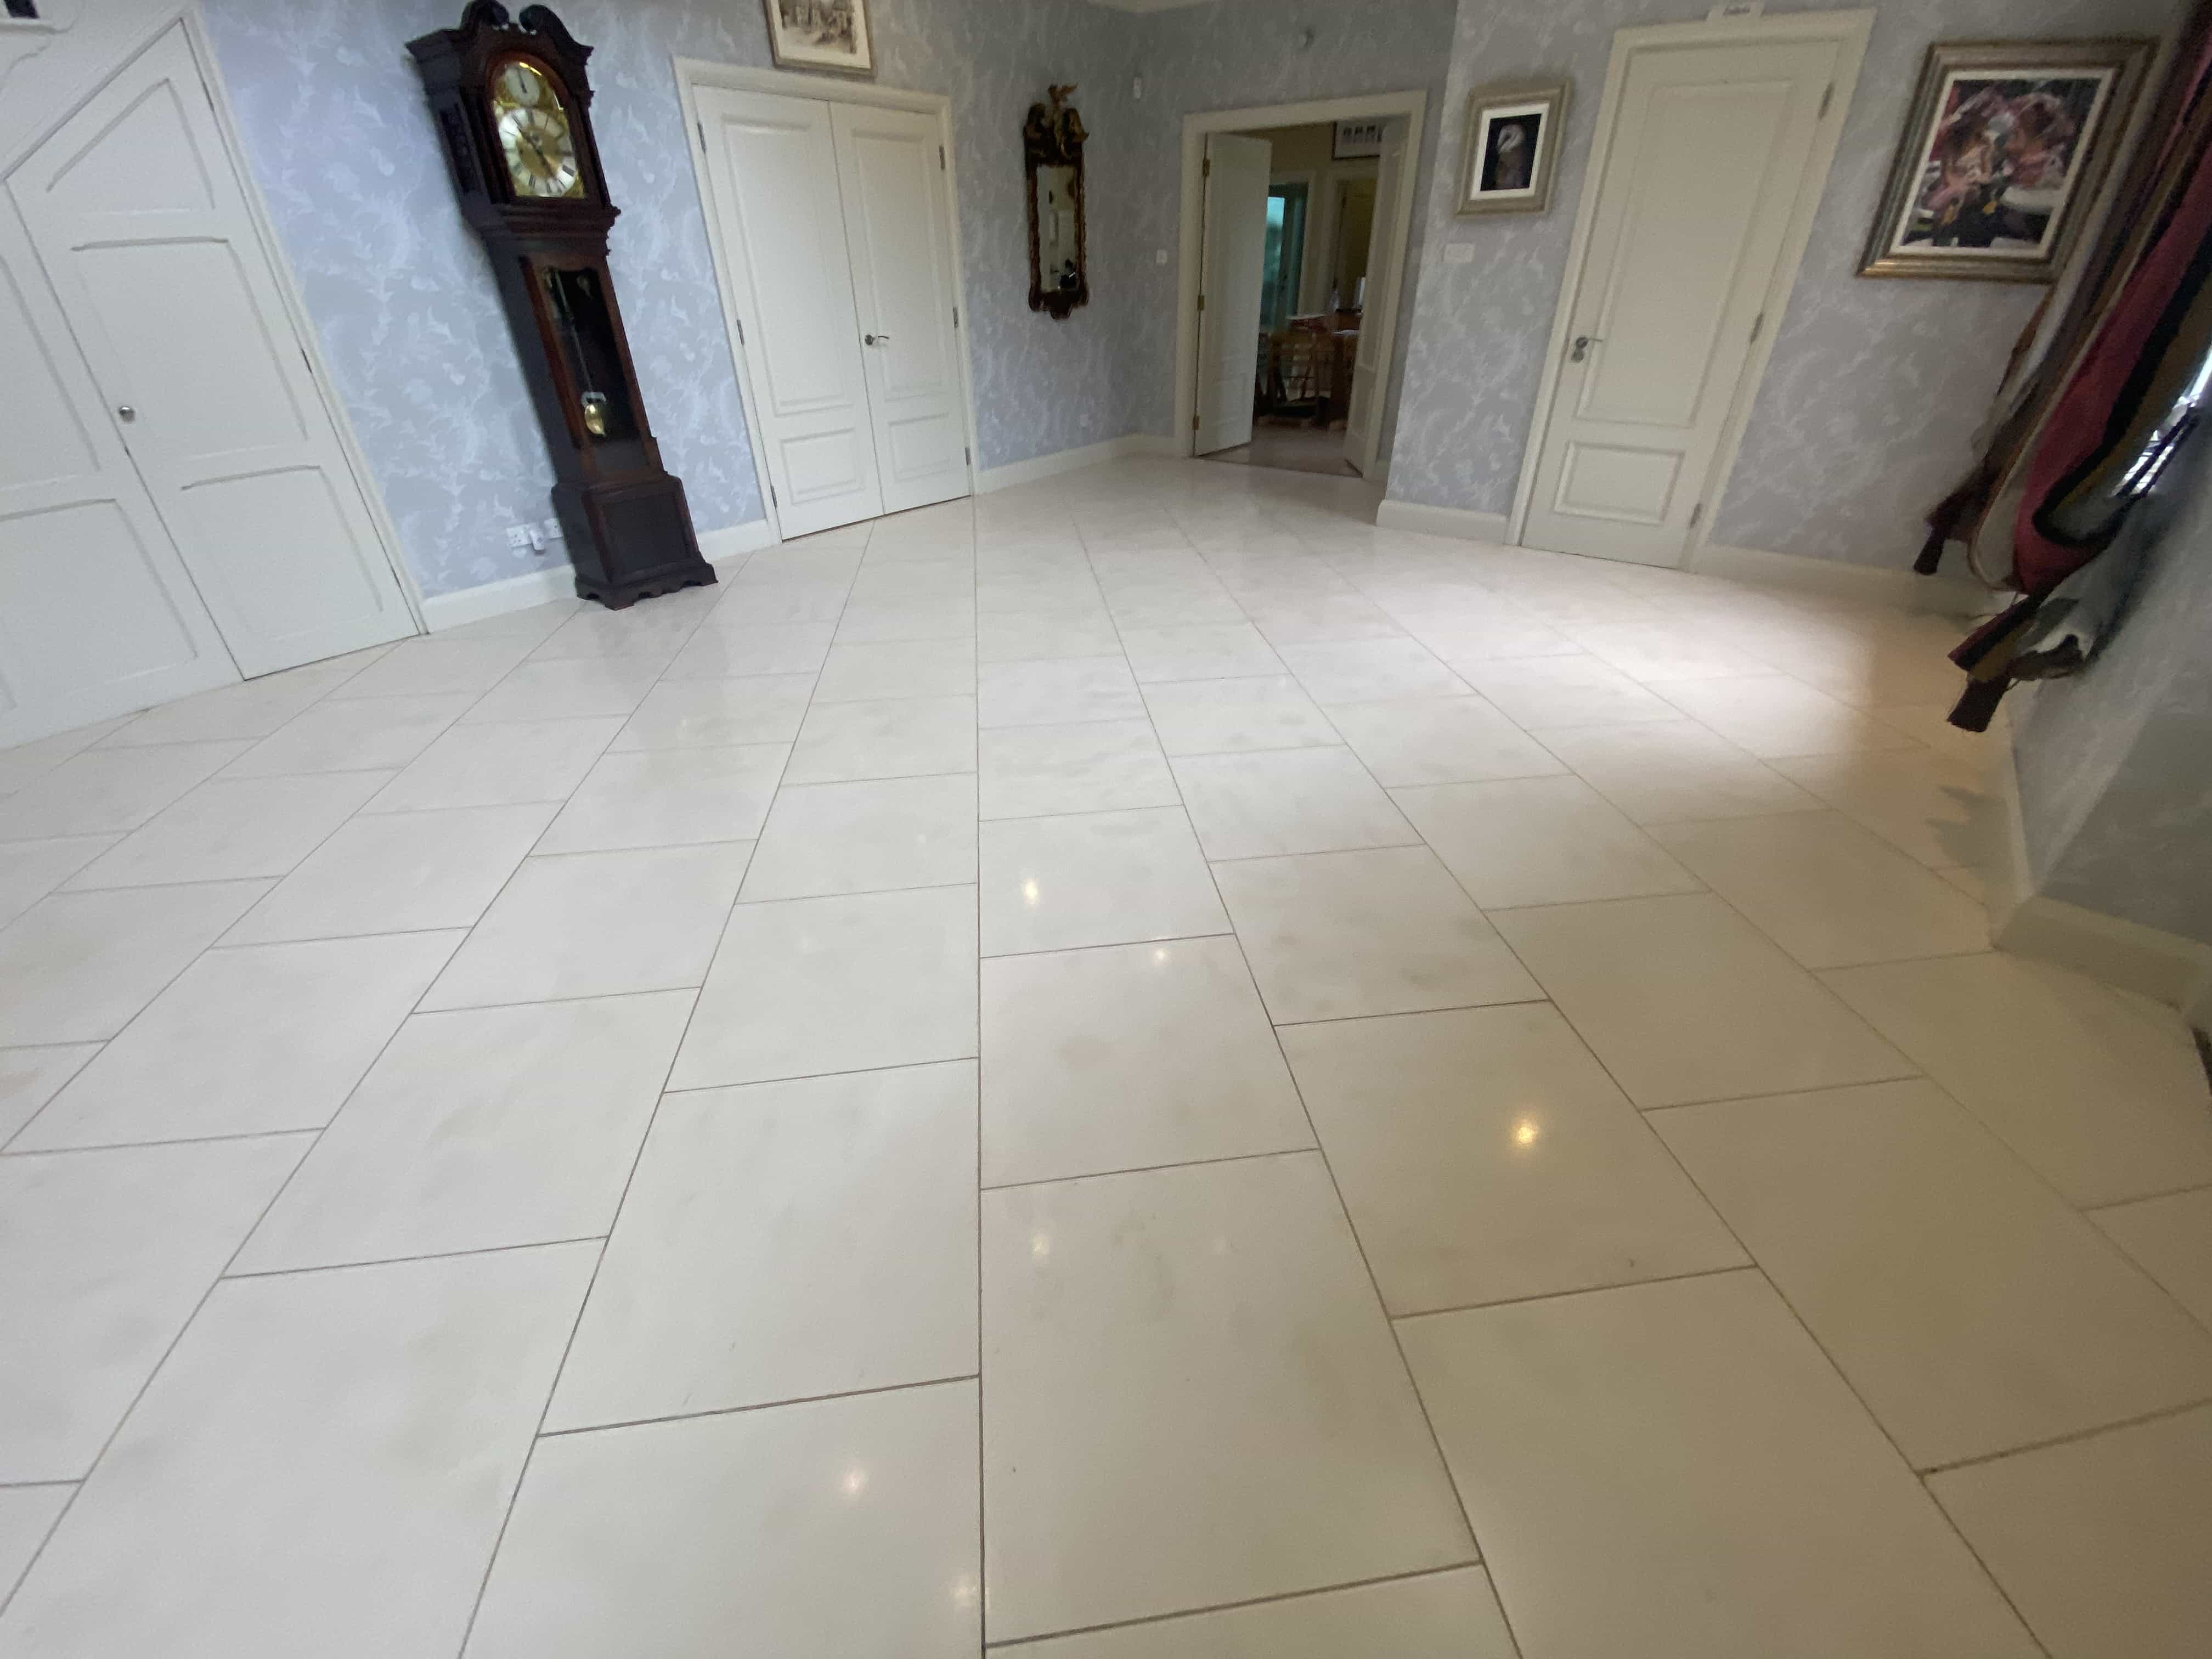 Polished Limestone Floor After Cleaning Polishing Toft